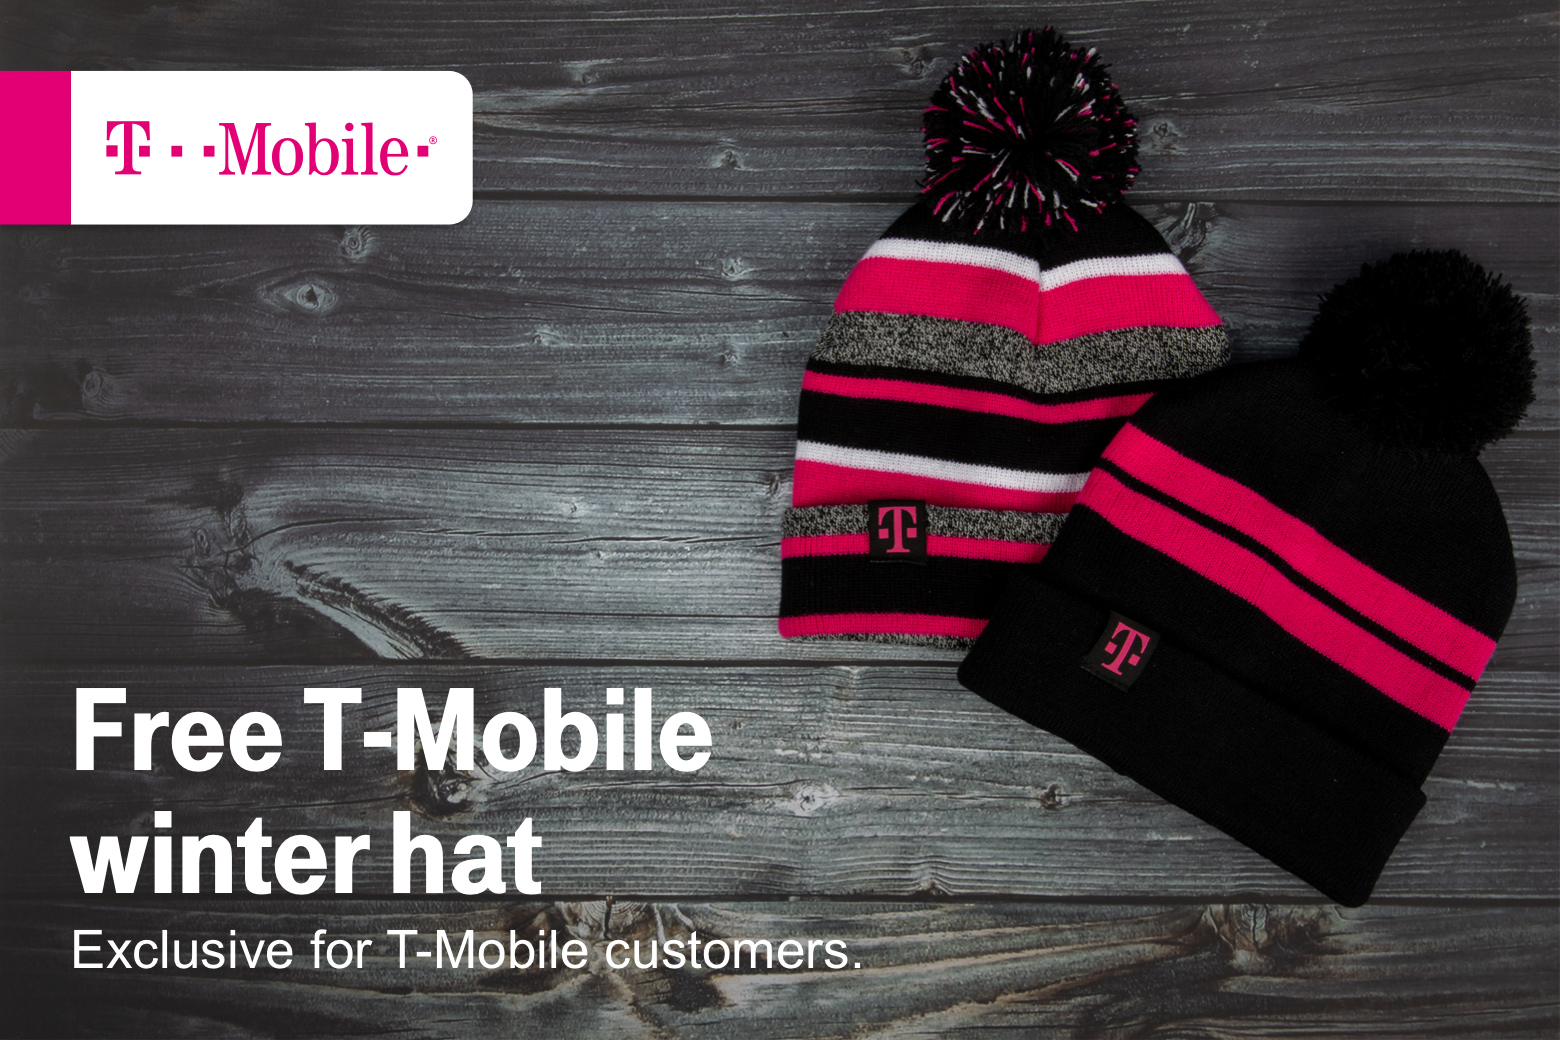 T-Mobile. Free T-Mobile winter hat. Exclusive for T-Mobile customers.